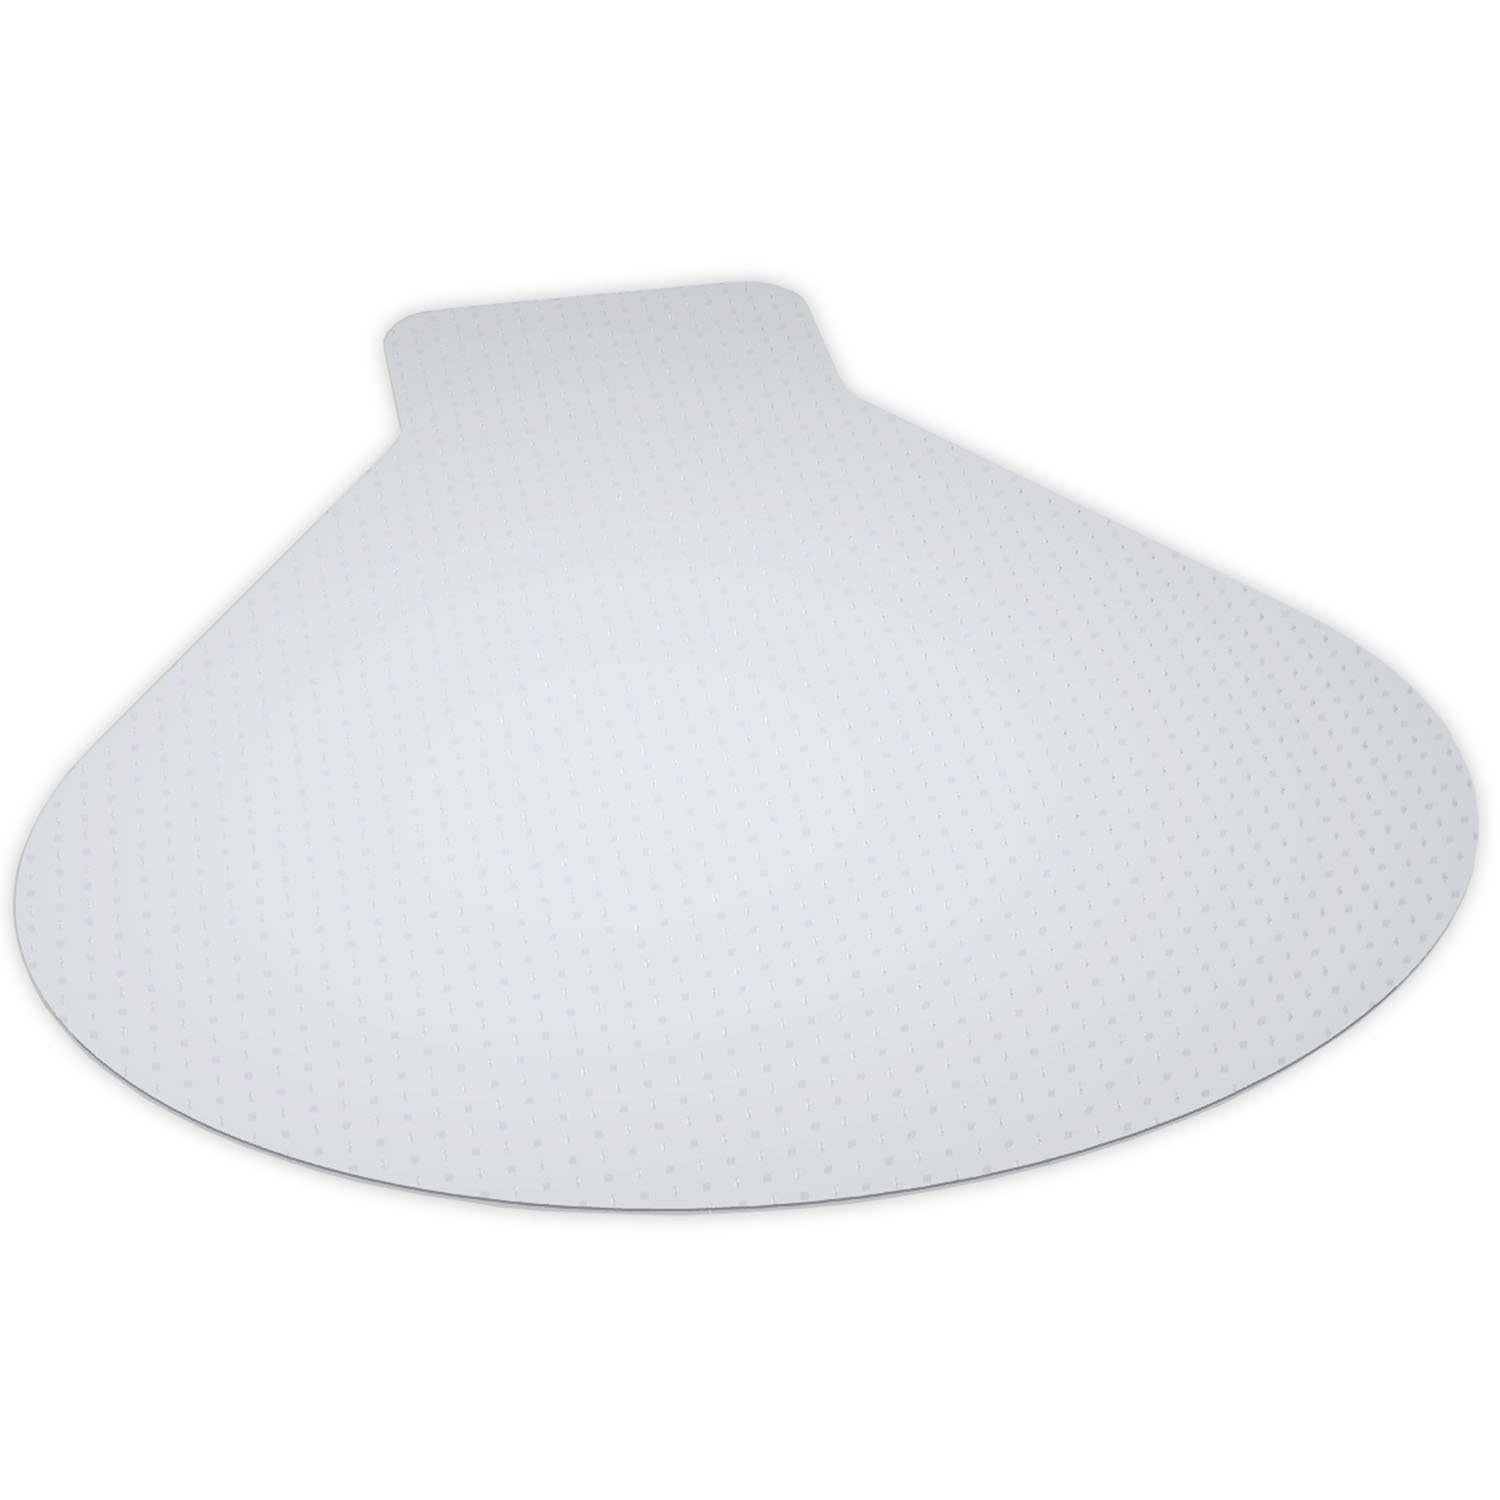 chair mat with lip. Amazon.com: ES Robbins EverLife Workstation Office Chair Mat For Medium Pile Carpet, 66 By 60-Inch, Clear: Kitchen \u0026 Dining With Lip P